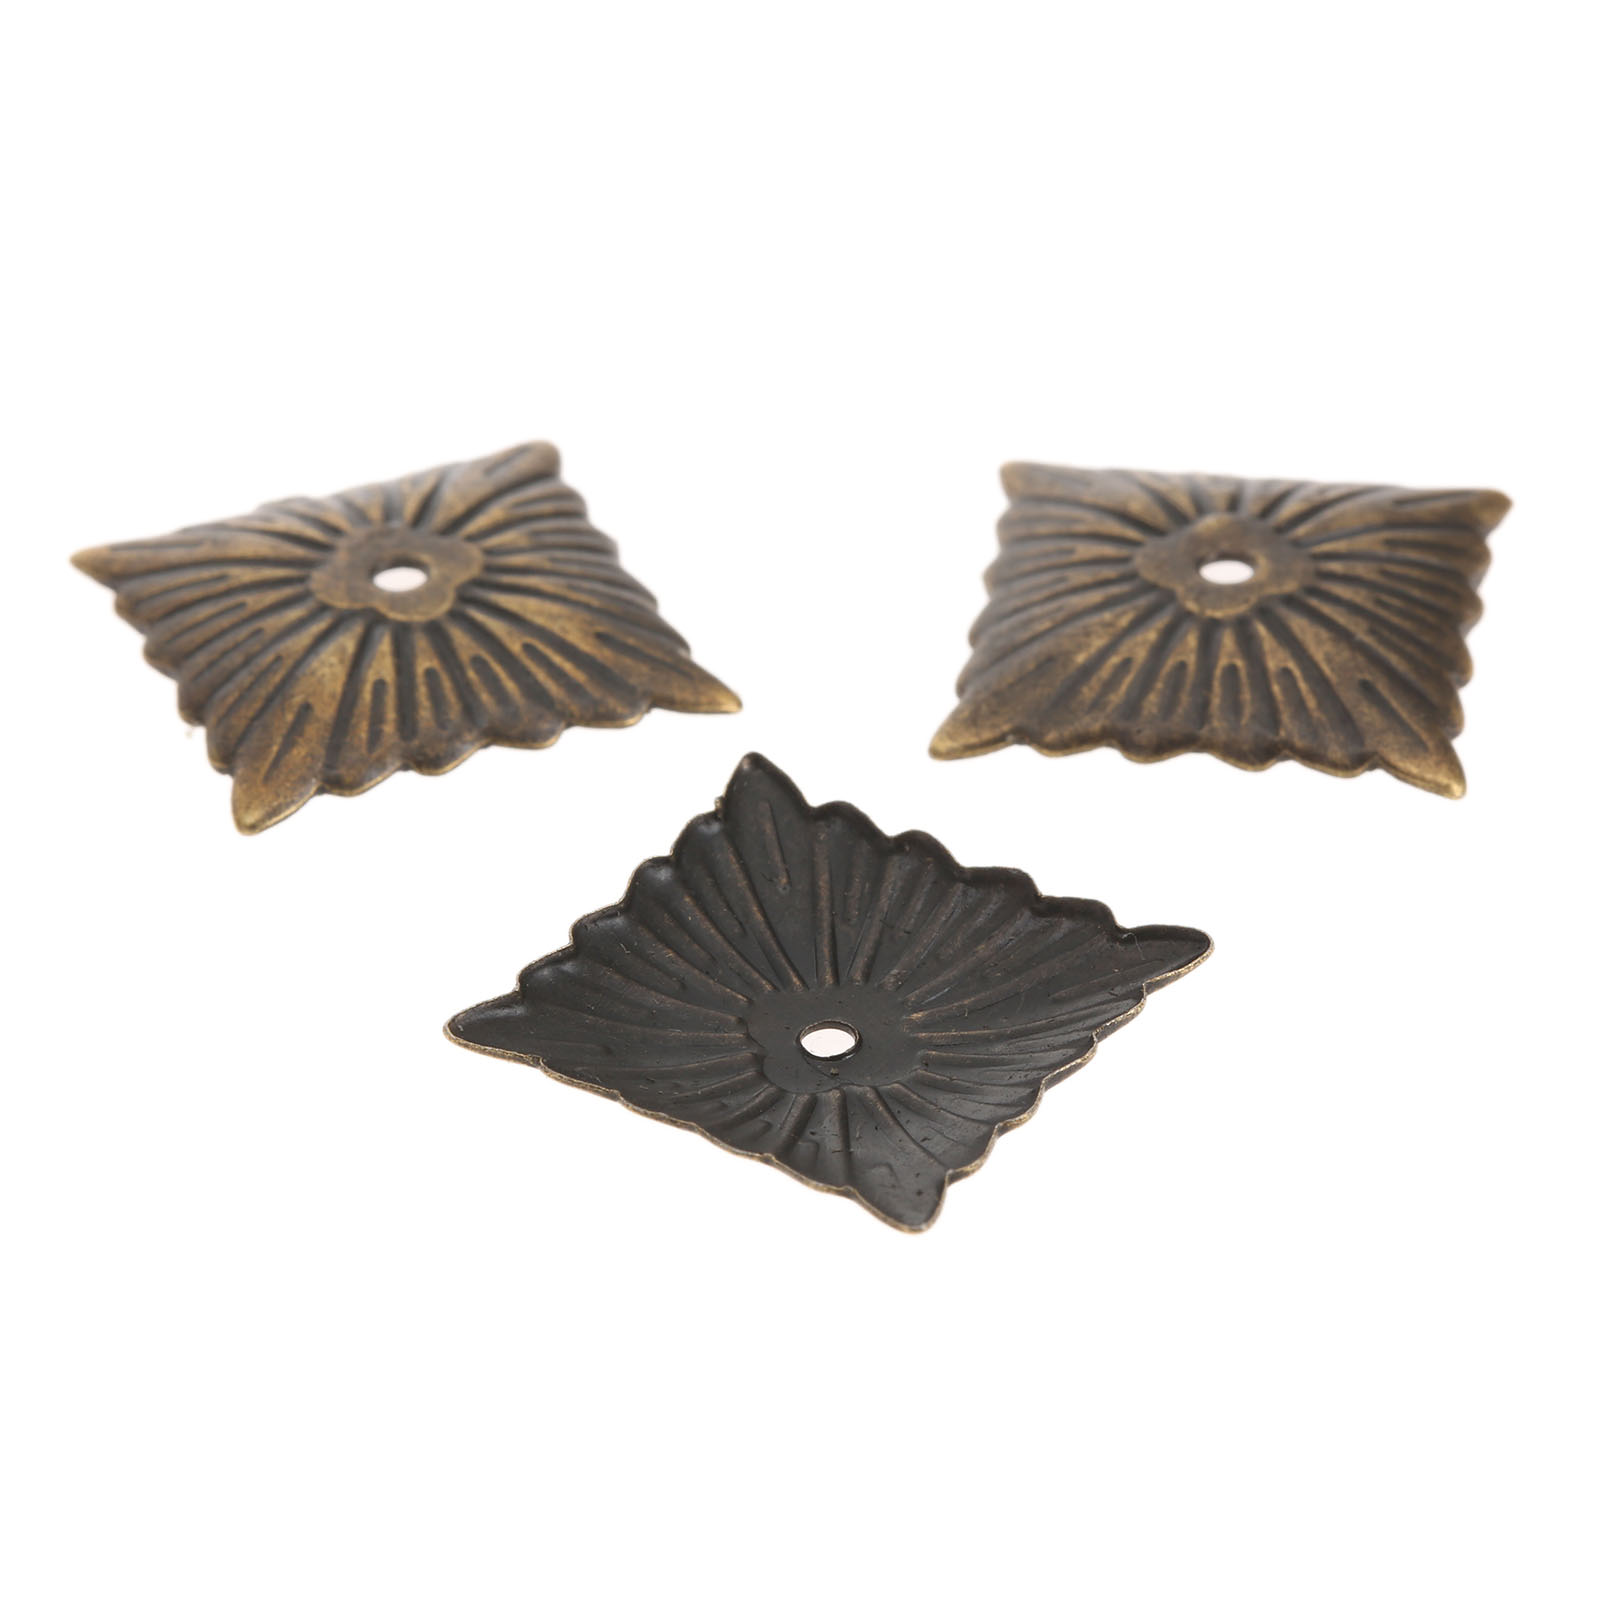 100Pcs 21x21mm Upholstery Nails Antique Bronze Decorative Upholstery Nails Tack Studs Door Sofa Home Decor Furniture Hardware in Nails from Home Improvement